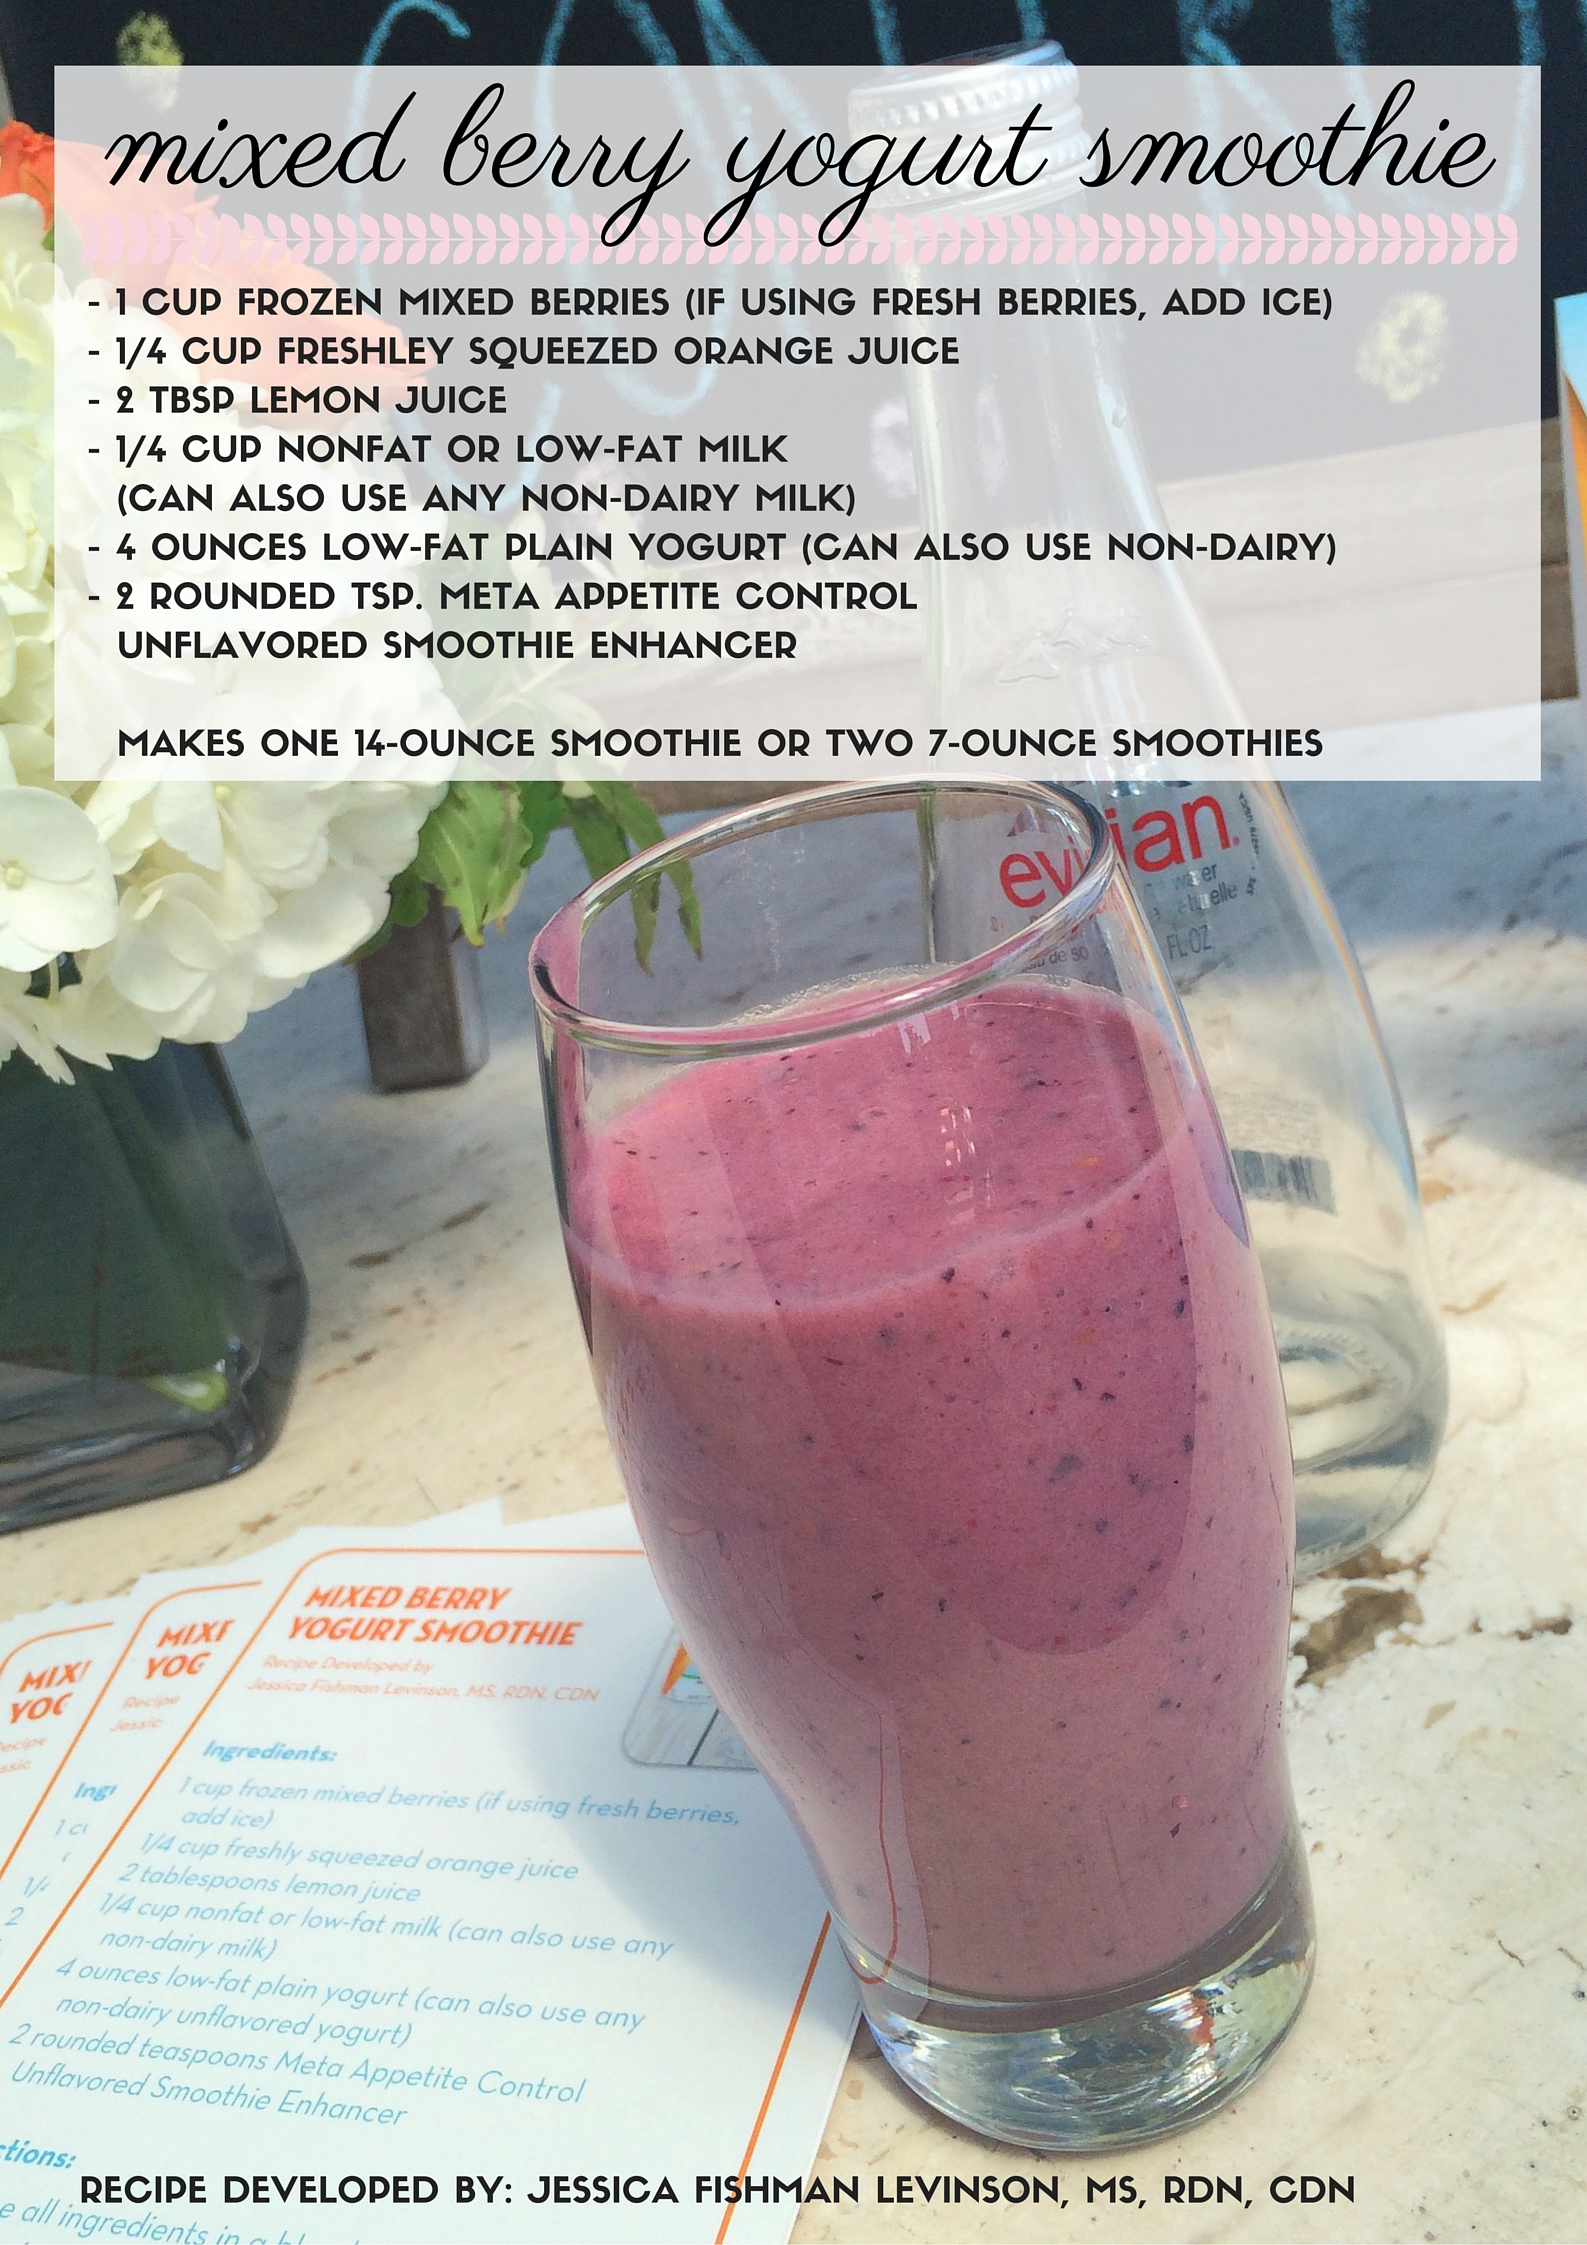 mixed berry yogurt smoothie with meta appetite control smoothie enhancer